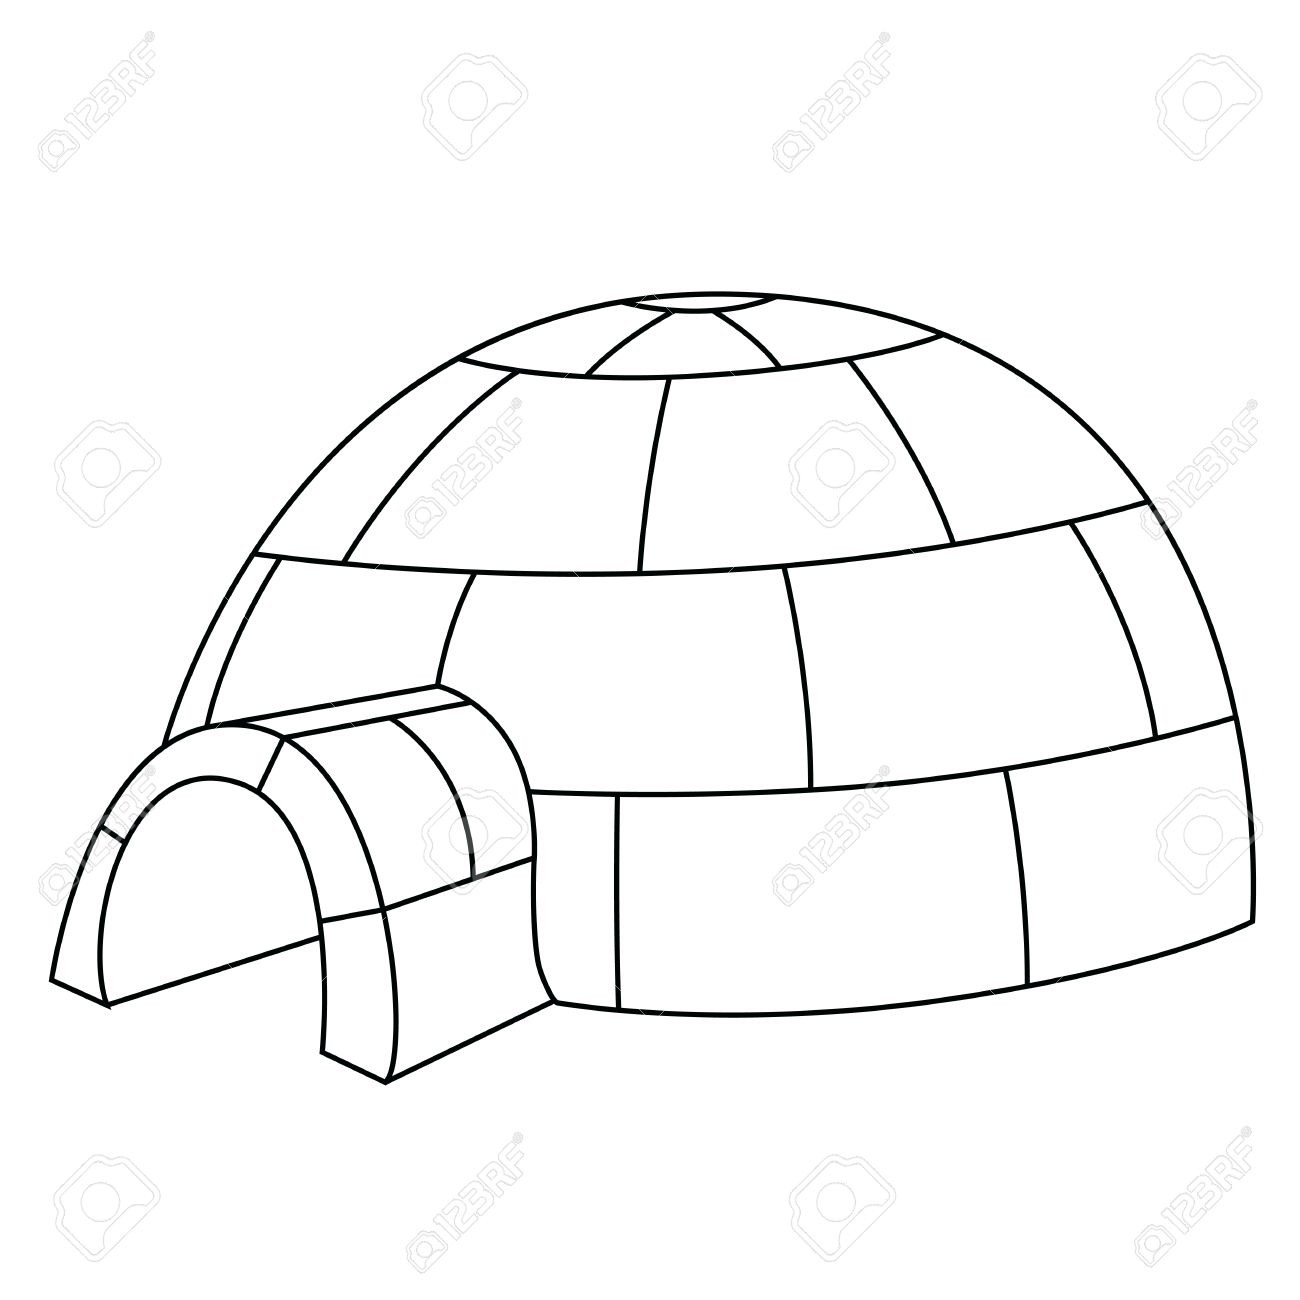 hight resolution of black outline vector igloo on white background stock vector 25307095